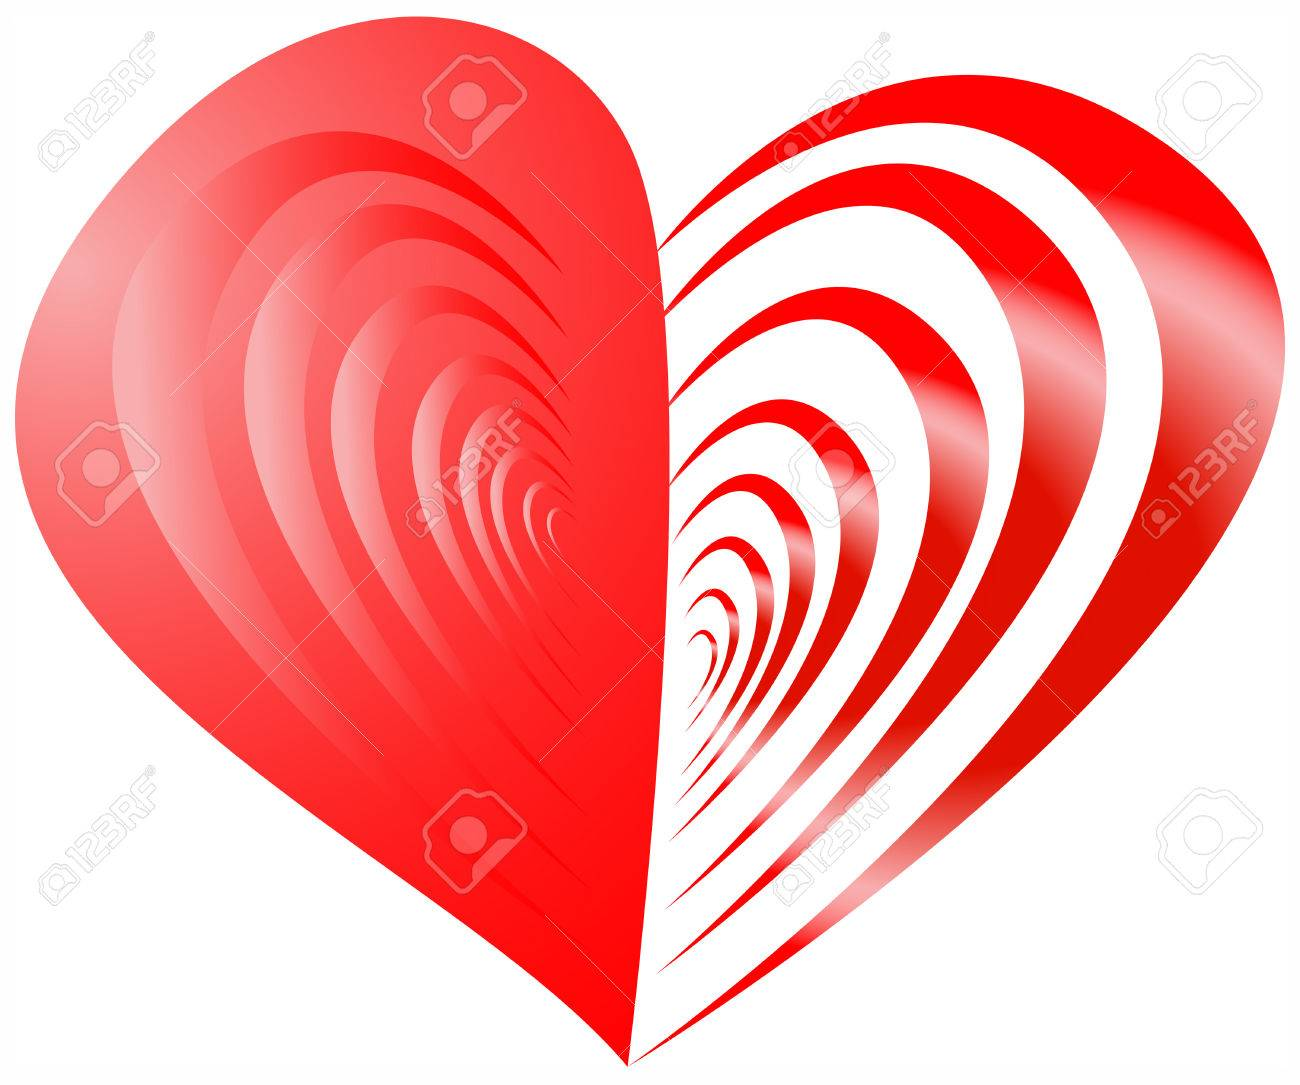 Heart stock illustration royalty free illustrations stock clip art - Red Heart With One Half From Strips Stock Vector 3732852